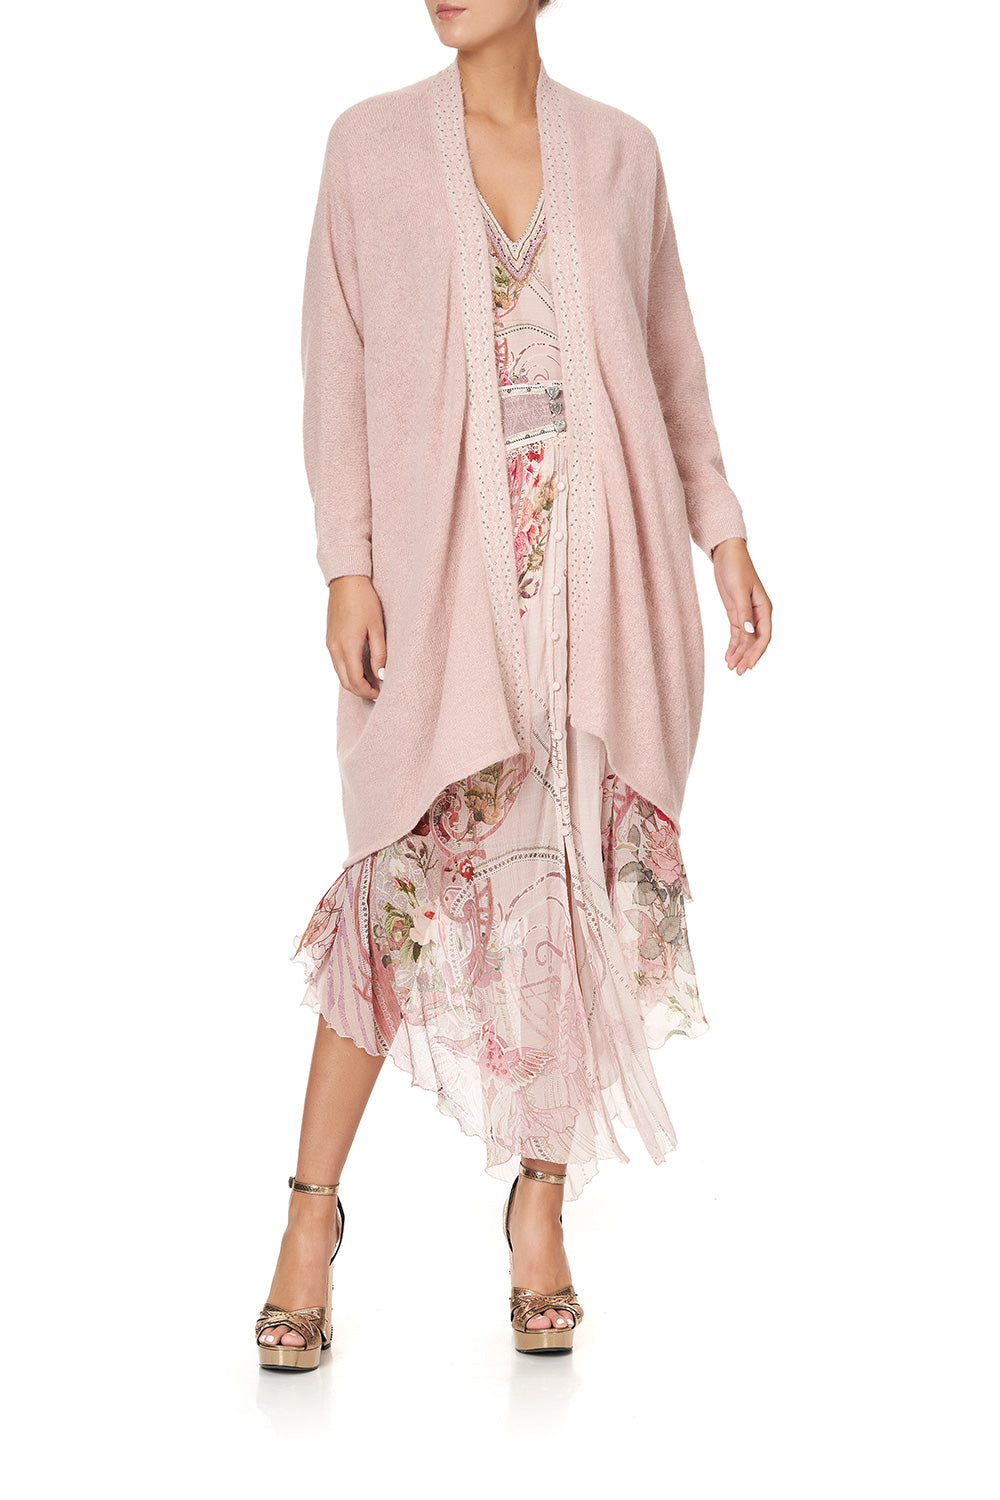 SOFT KNIT PONCHO WITH EMBROIDERY PINK ISTENANYA